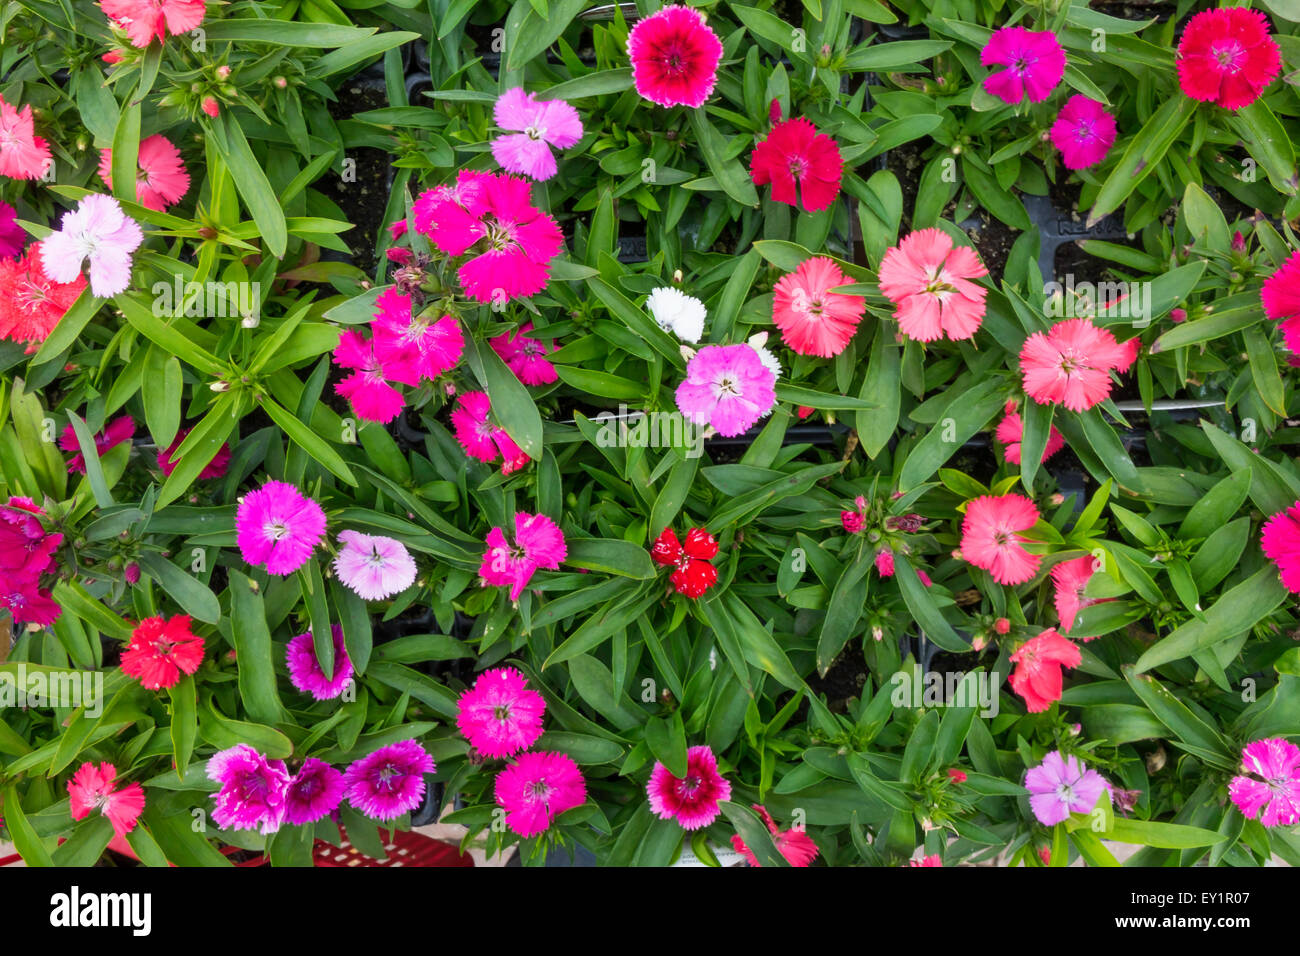 Dianthus marquis hardy pinks mixed flowers in a garden centre for dianthus marquis hardy pinks mixed flowers in a garden centre for sale ready for spring planting mightylinksfo